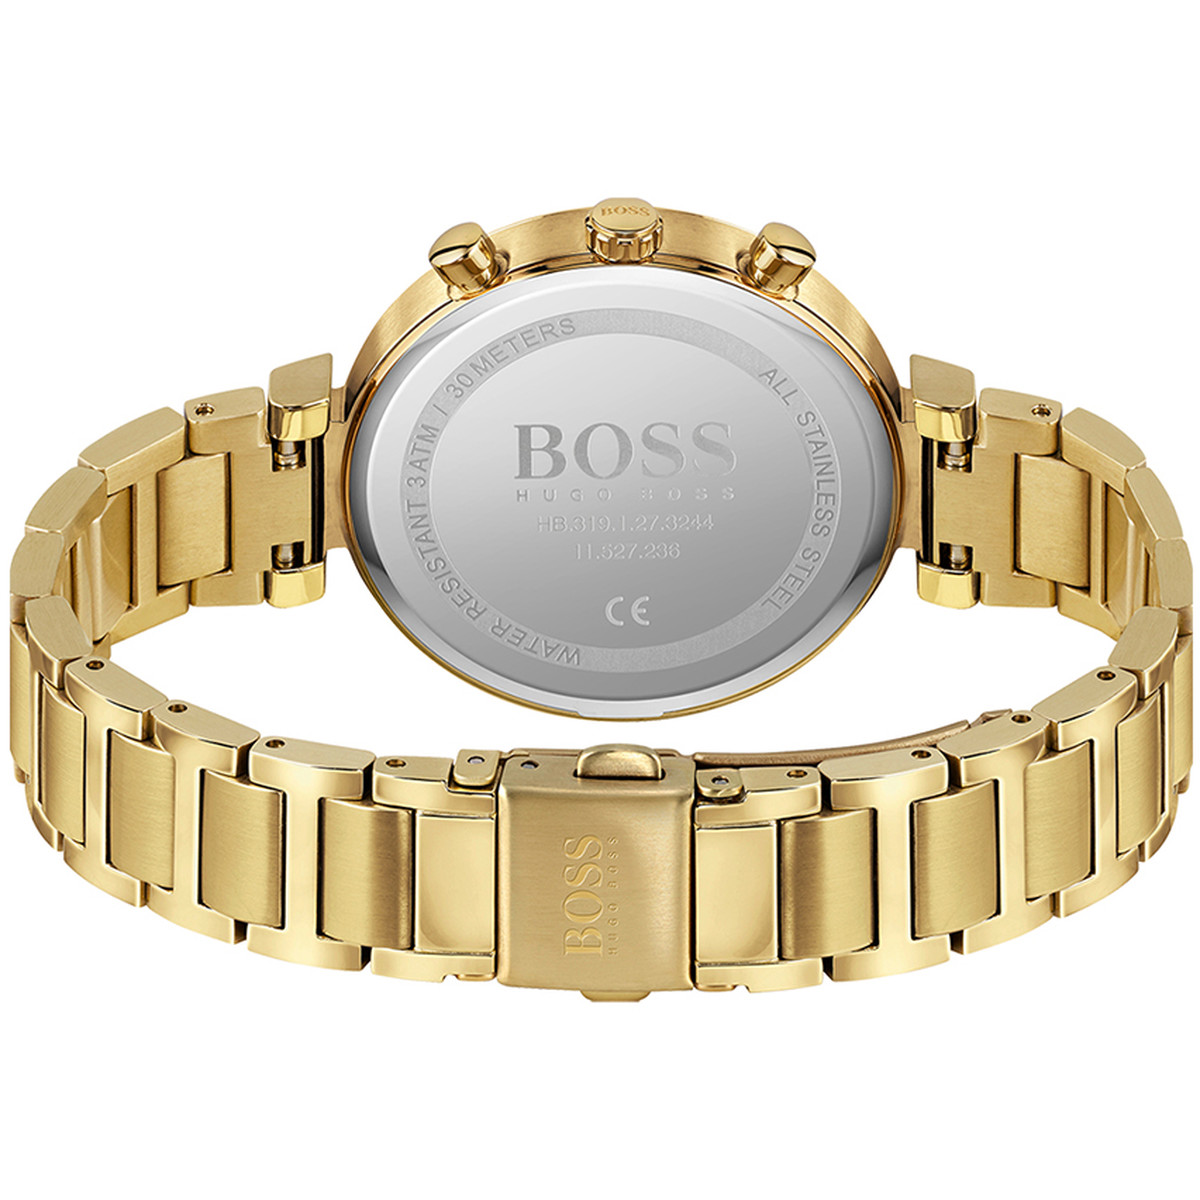 Montre BOSS BUSINESS FLAWLESS Bracelet Acier inoxydable - vue V3